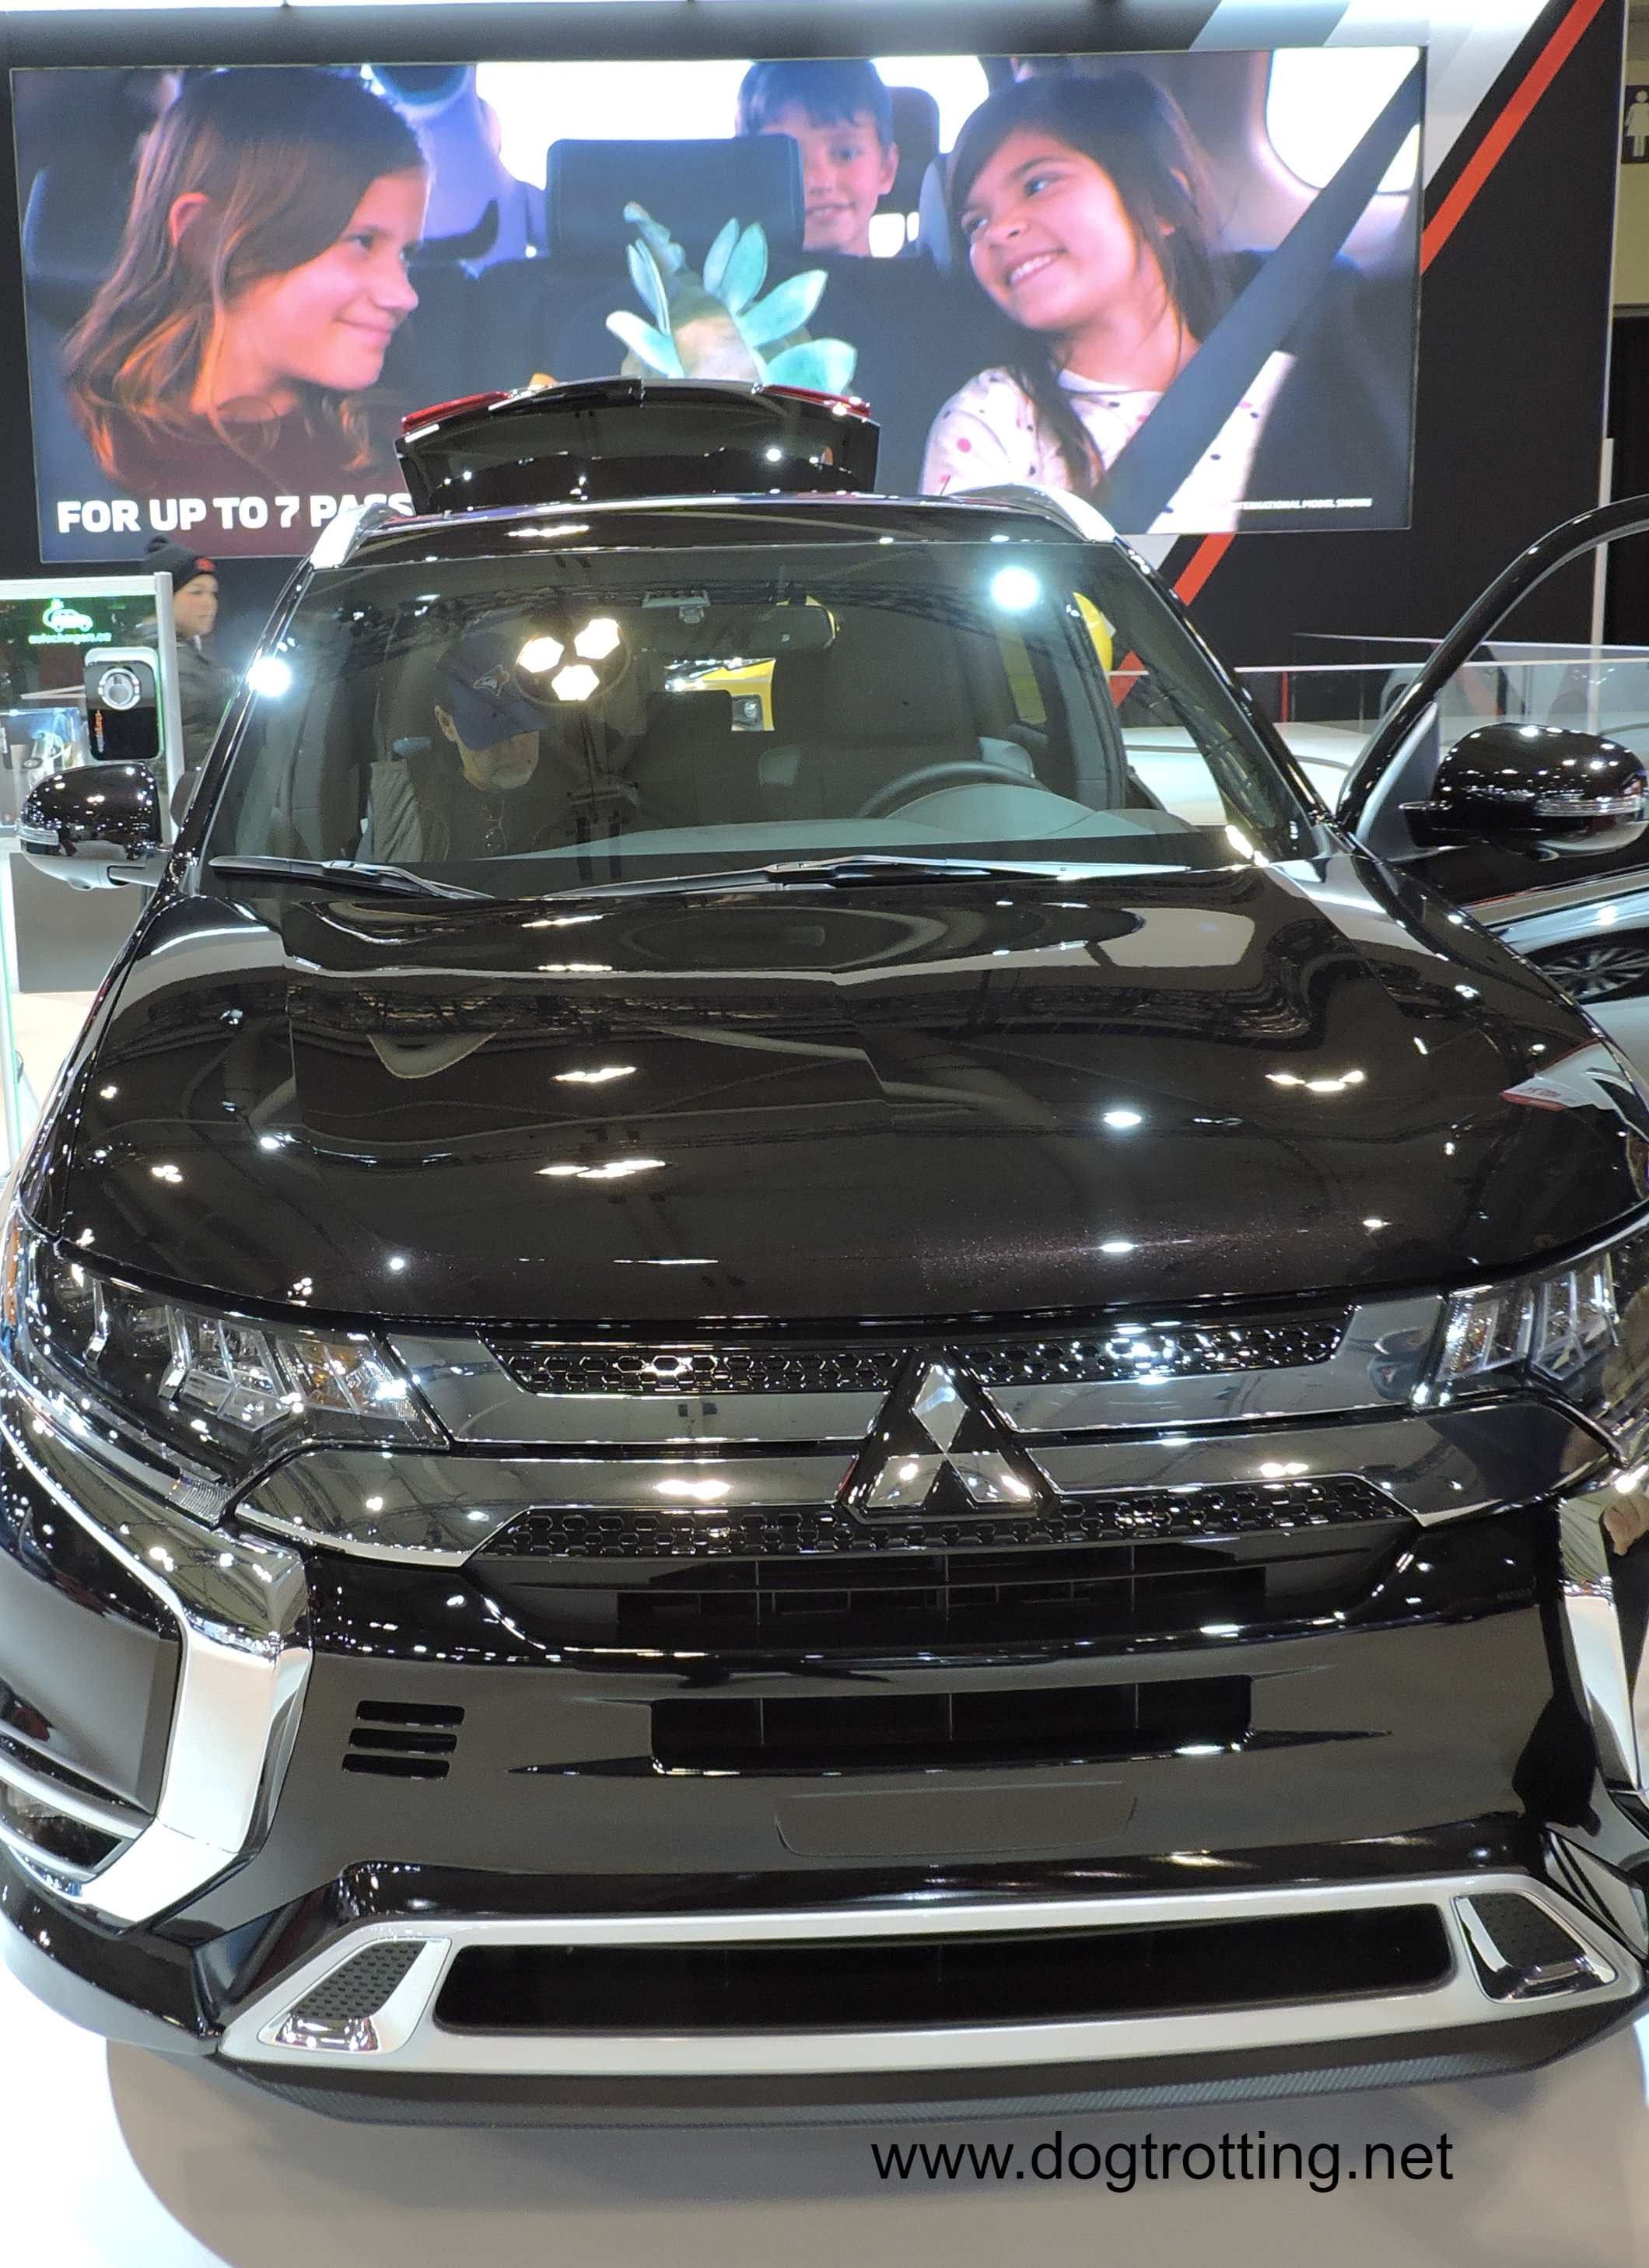 Mitzubishi Outlander car at auto show